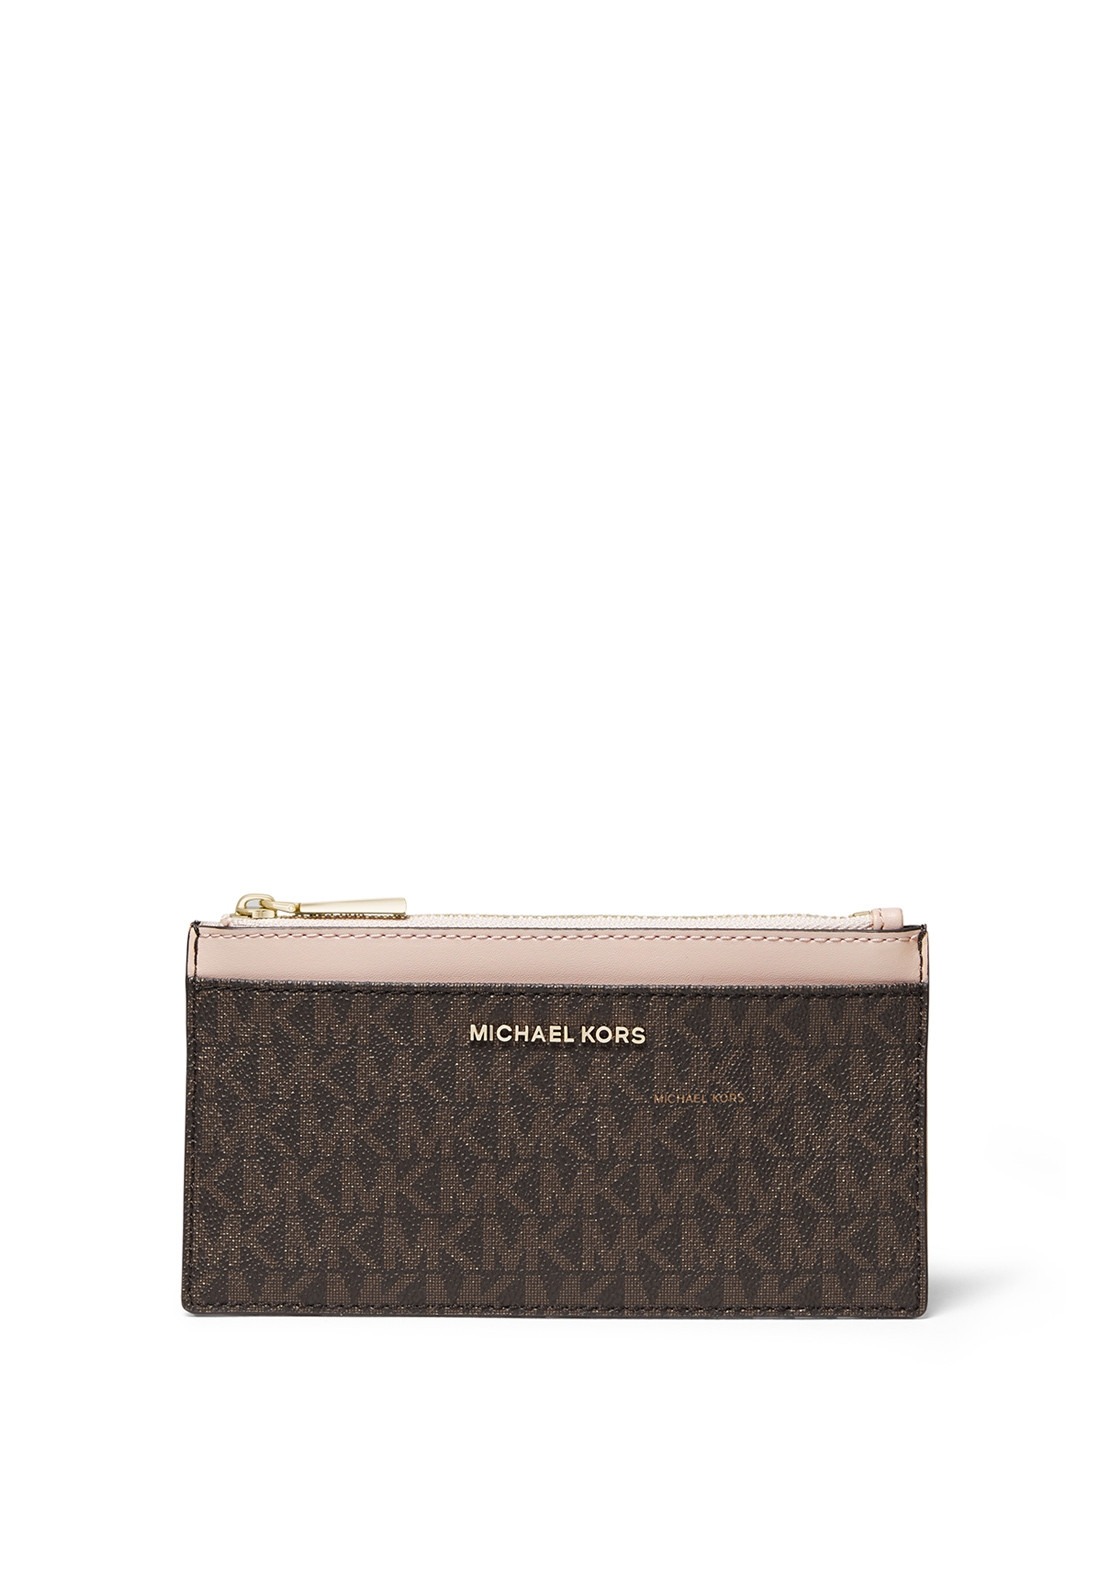 8c8db36436a3 MICHAEL Michael Kors Slim Leather Card Case, Brown & Soft Pink. Be the  first to review this product